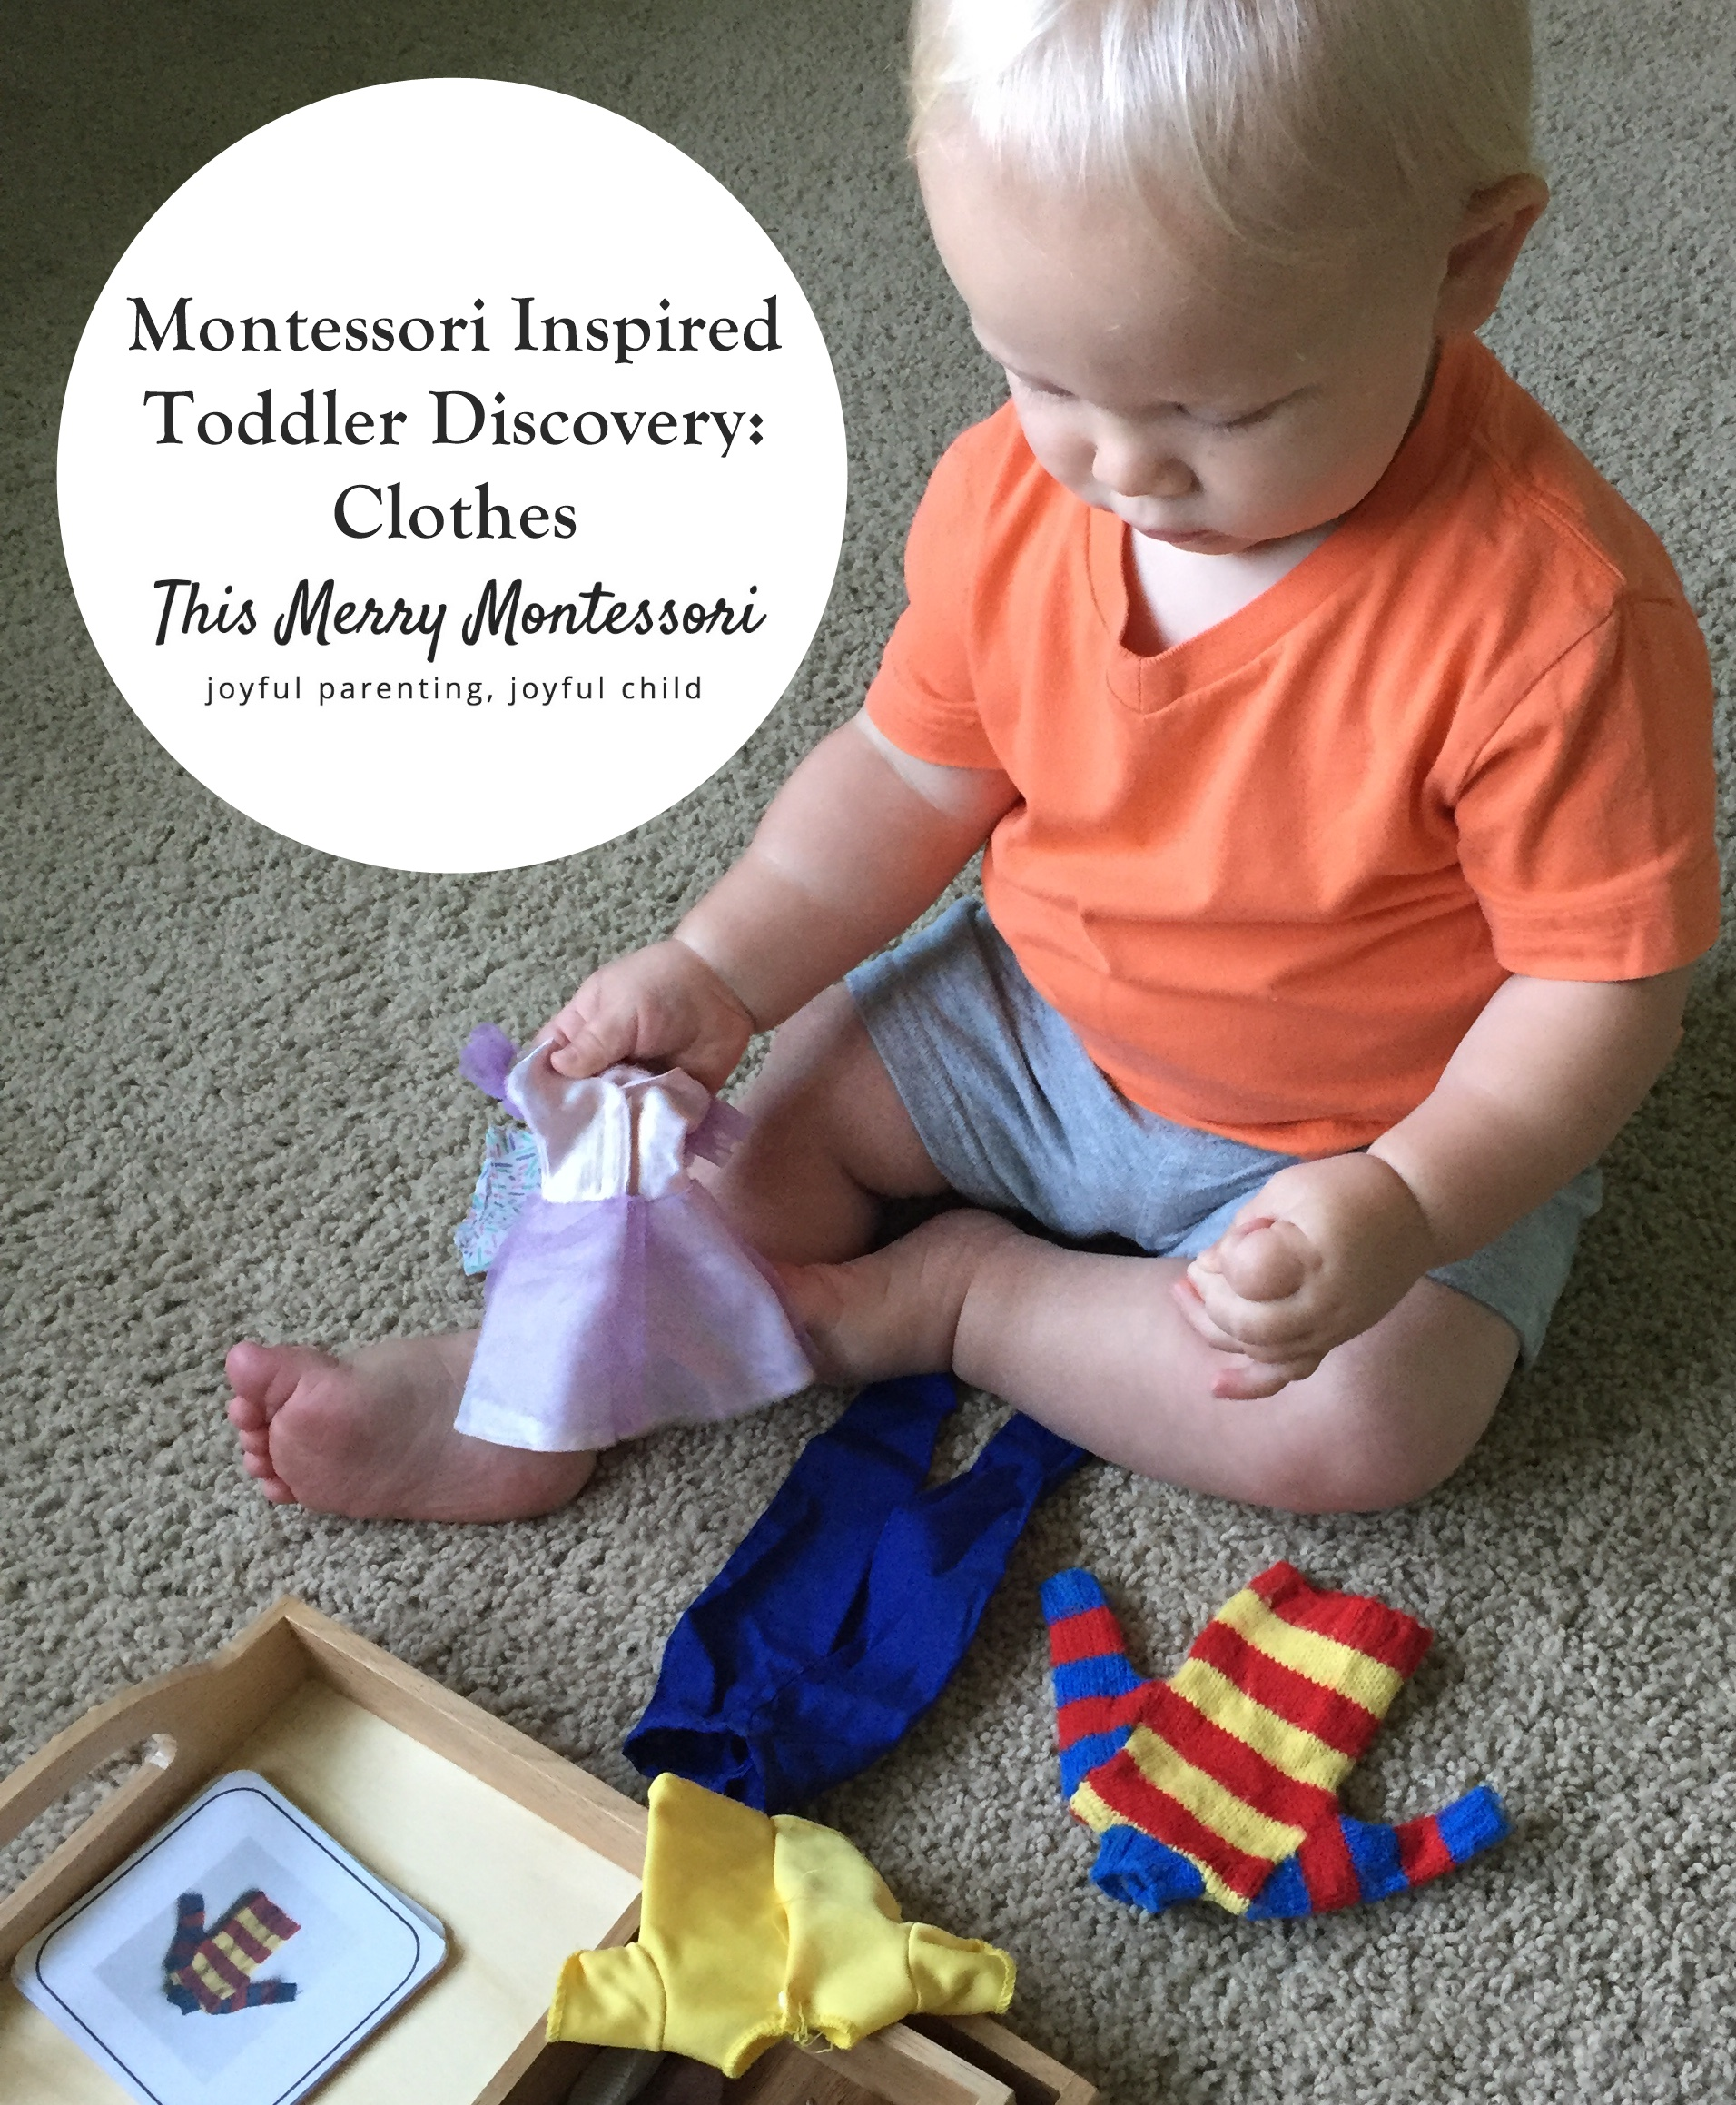 2b2ed1f66dc4 Montessori Inspired Toddler Discovery  Clothes – This Merry Montessori